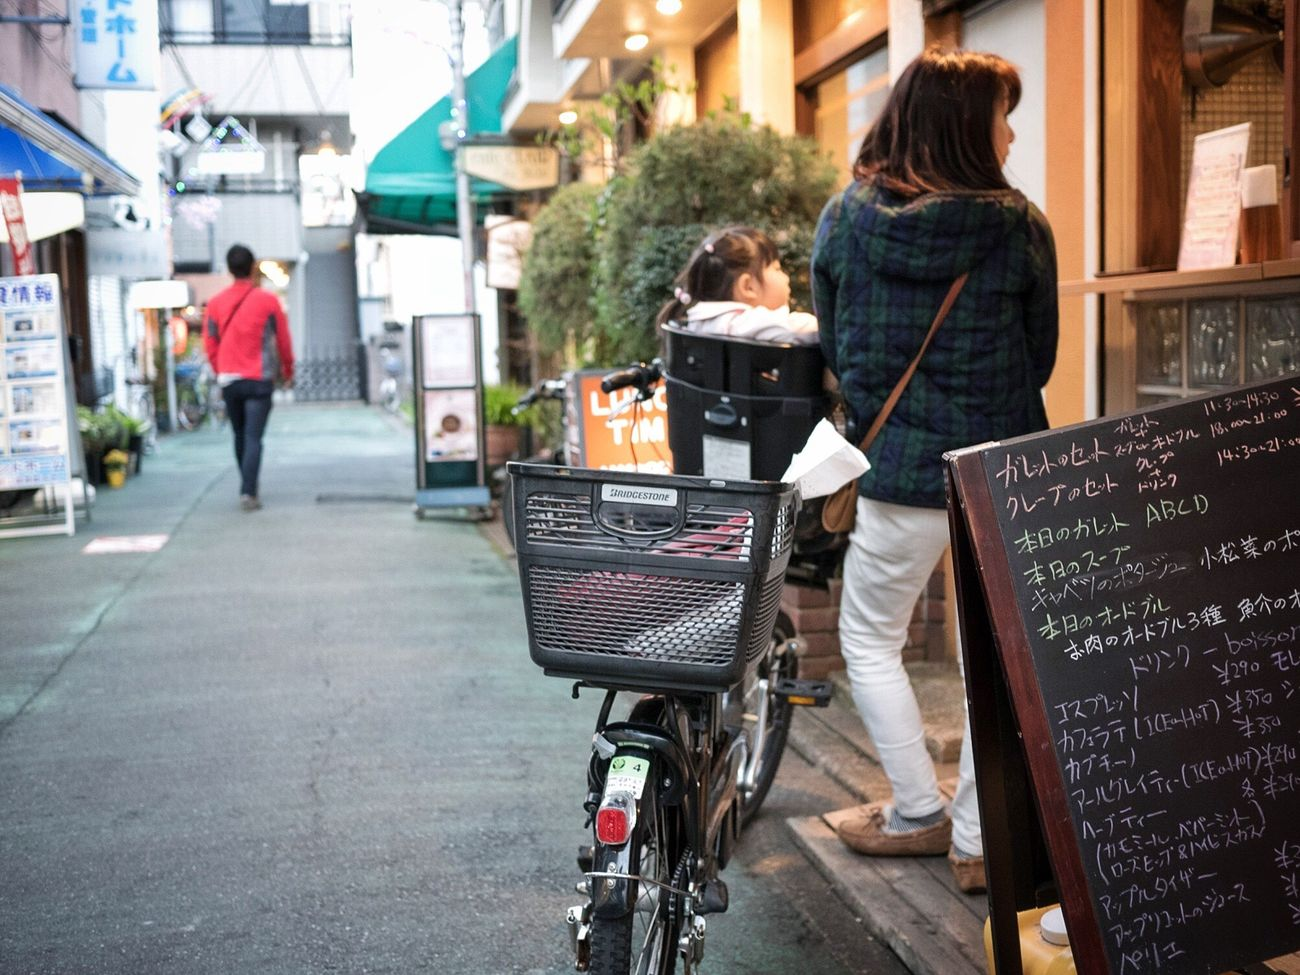 City City Life Togetherness People Snapshot CityWalk On The Road Streetphotography Street Evening Ogikubo 荻窪 Tokyo Japan